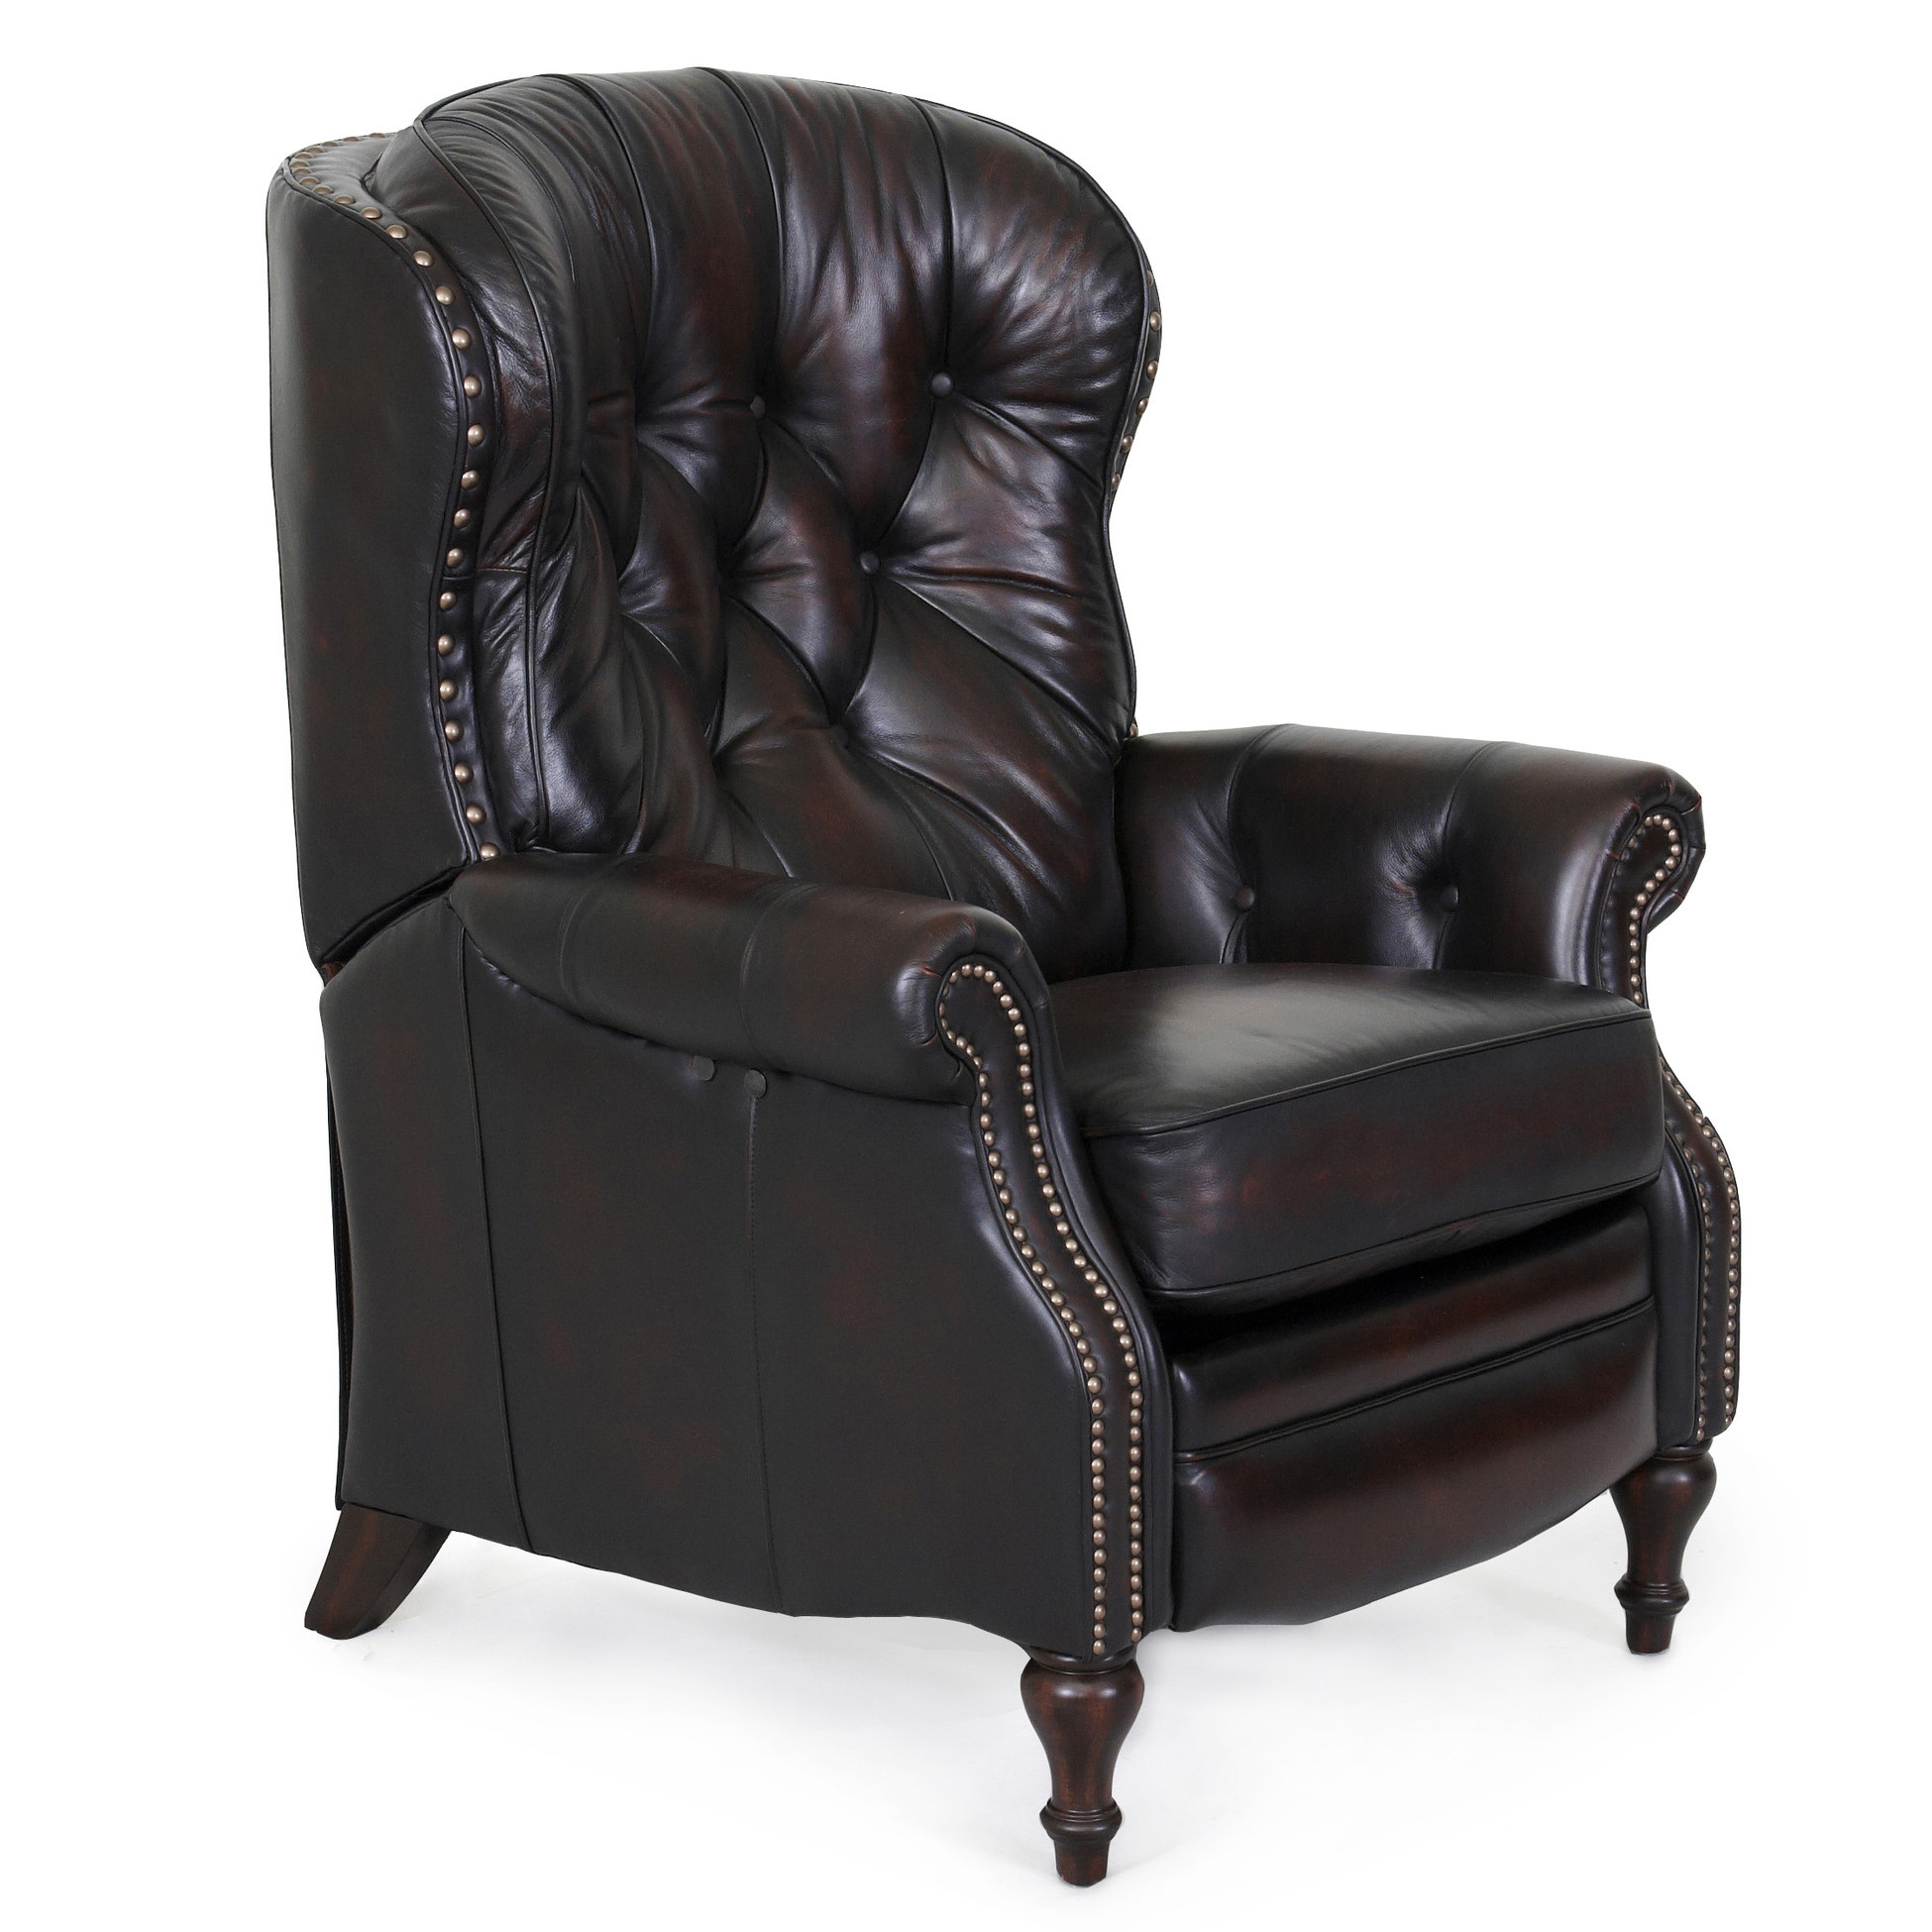 Chair Lounge Barcalounger Kendall Ii Recliner Chair Leather Recliner